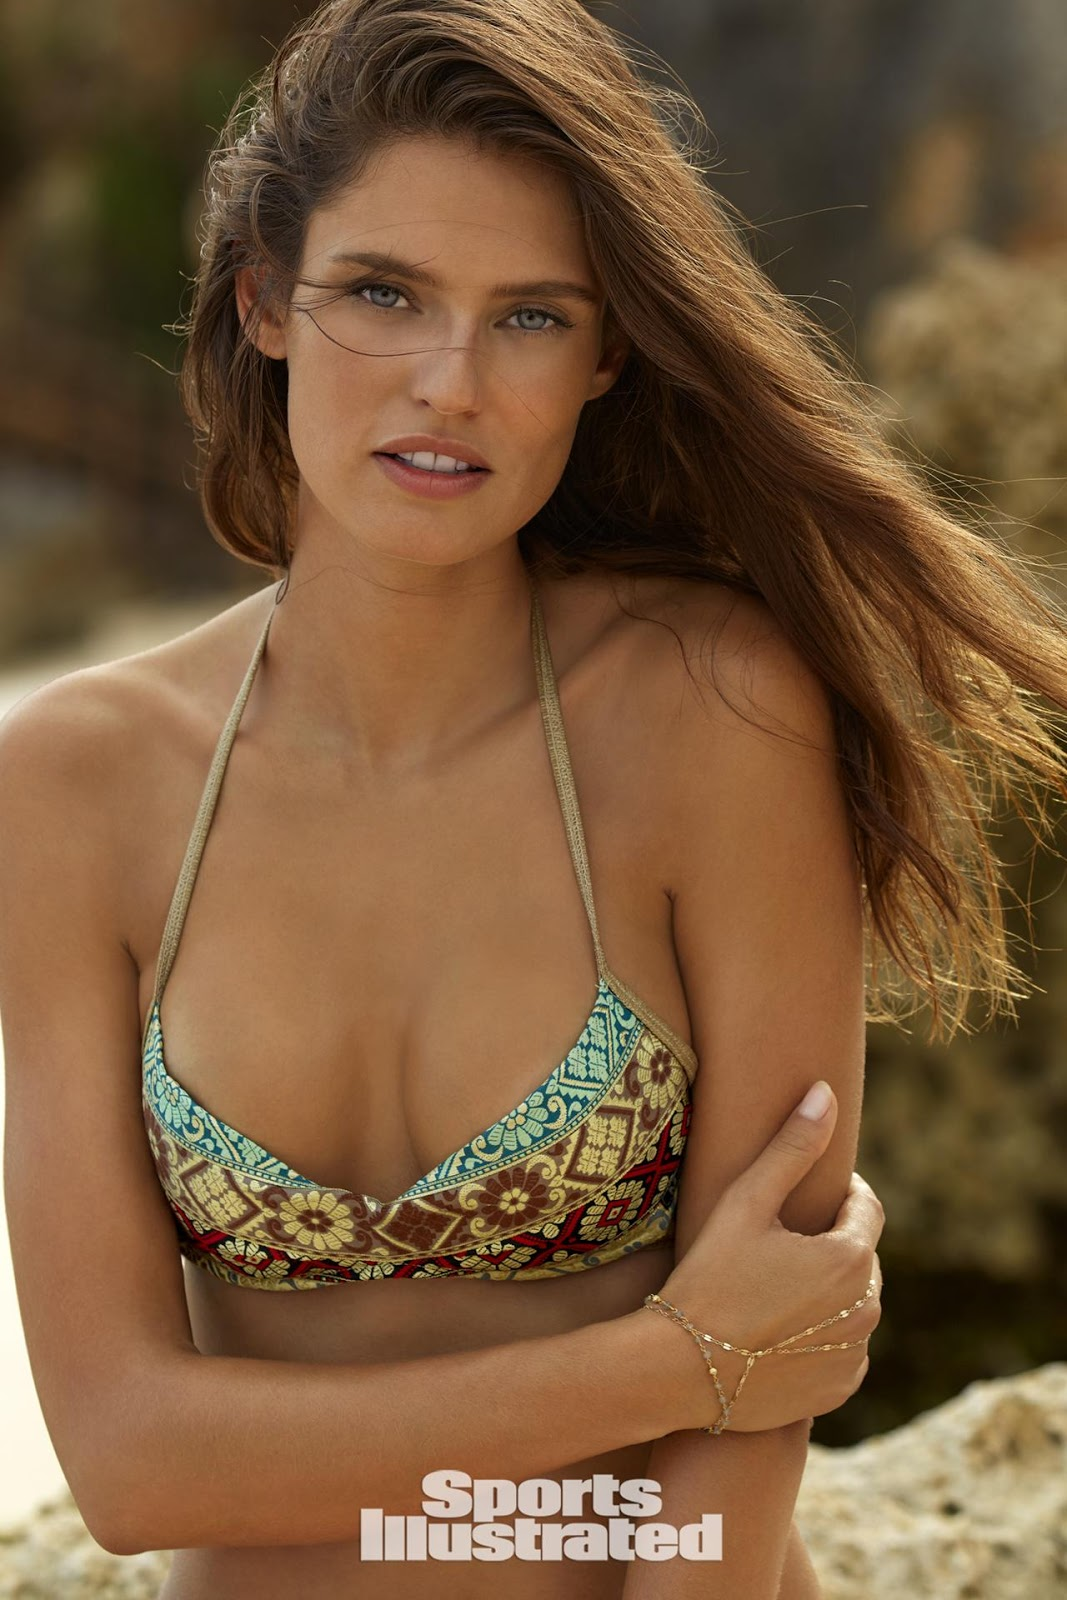 Bianca Balti is the Sports Illustrated Swimsuit Rookie of the Year 2017